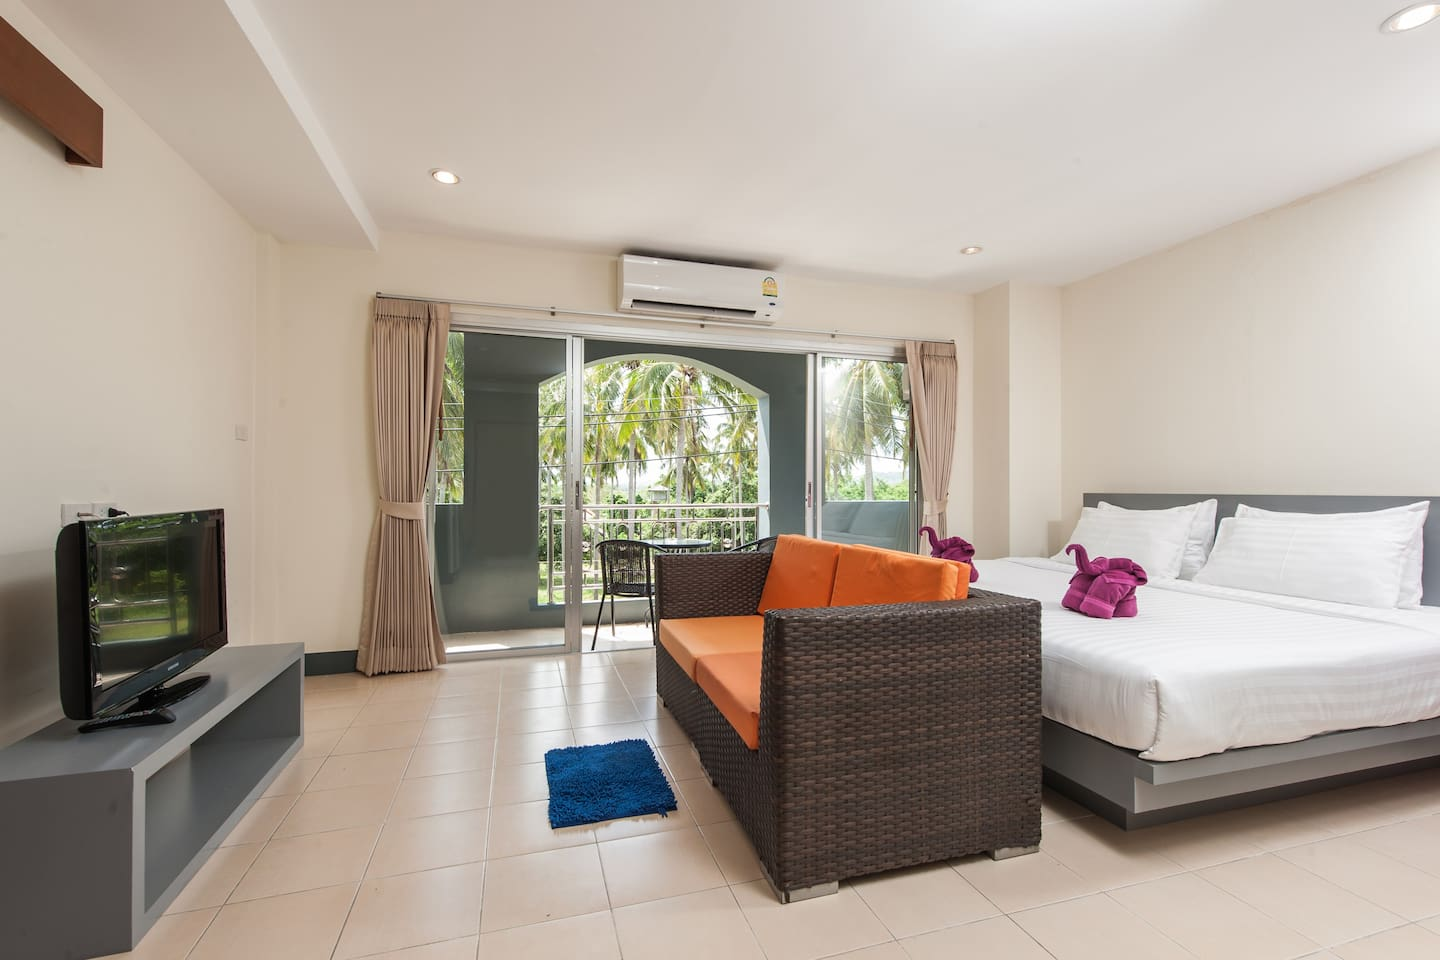 Bedroom with many facilities : Cable TV , Free WIFI , Sofa , refrigerator  , air-conditionor